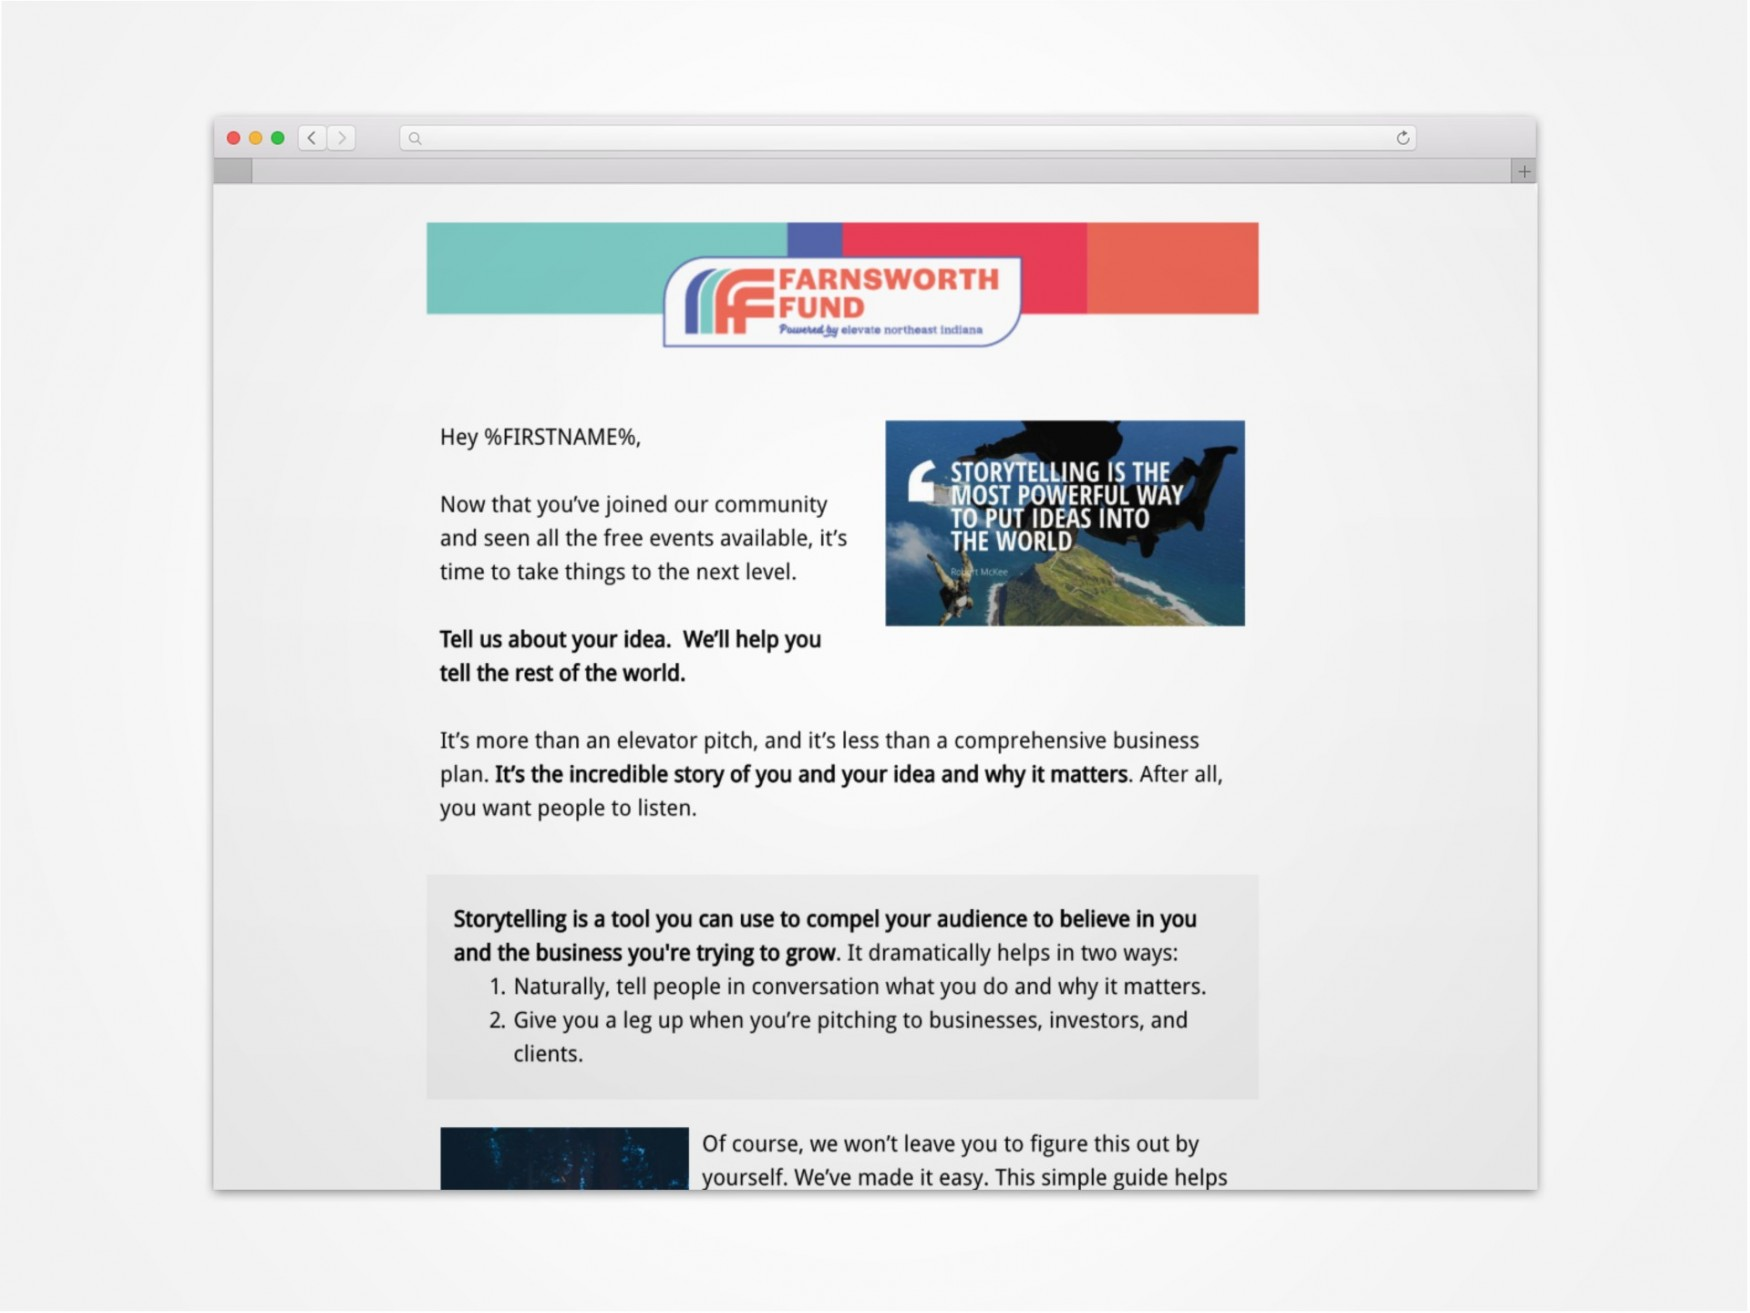 Fortitude Fund Email Marketing